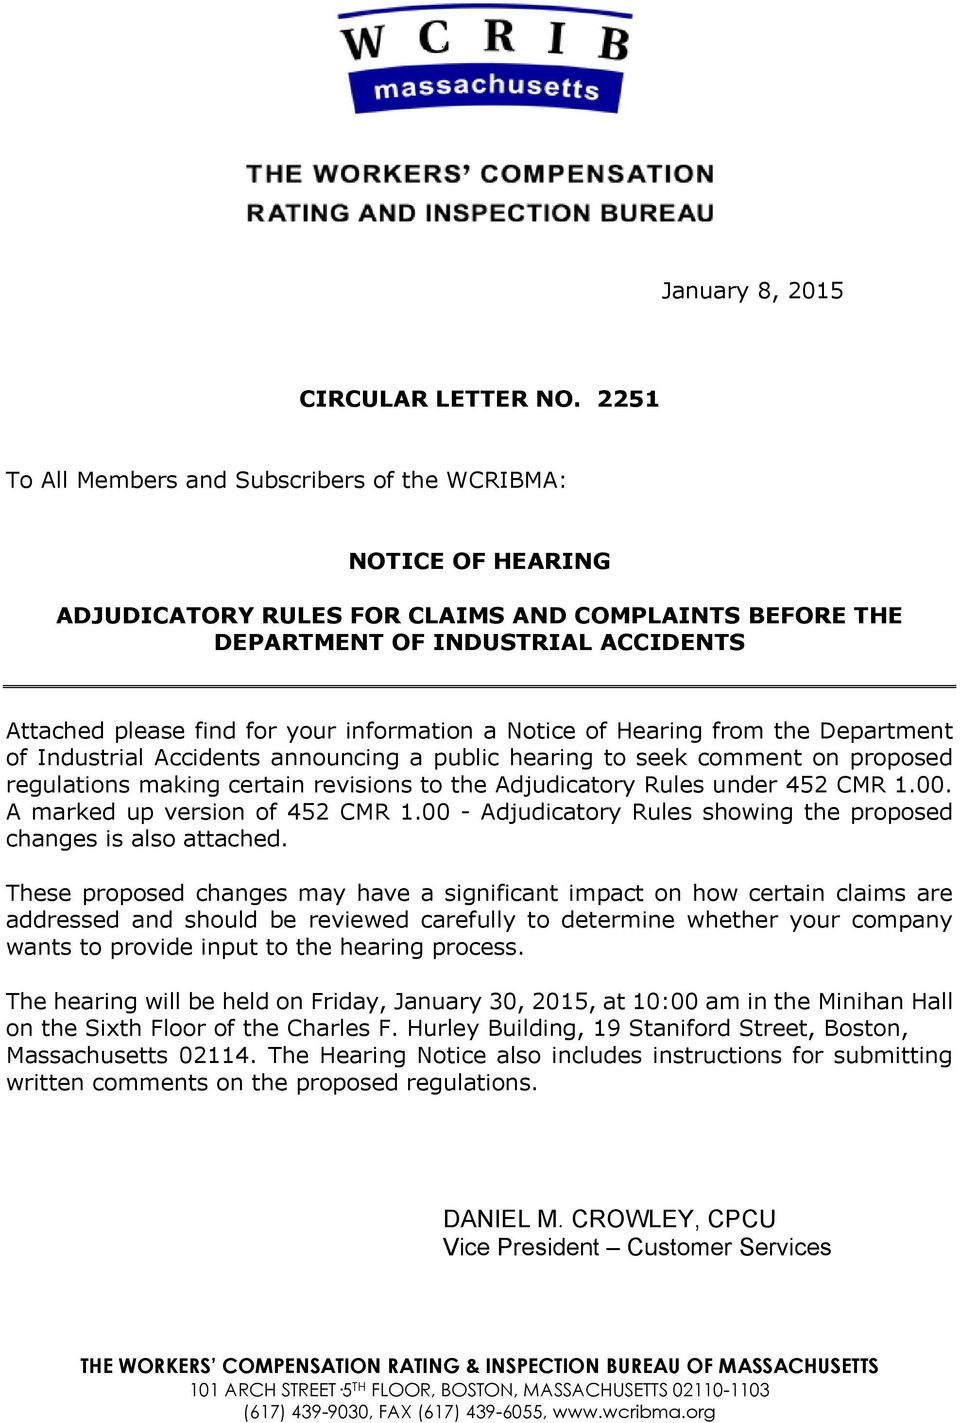 information a Notice of Hearing from the Department of Industrial Accidents announcing a public hearing to seek comment on proposed regulations making certain revisions to the Adjudicatory Rules